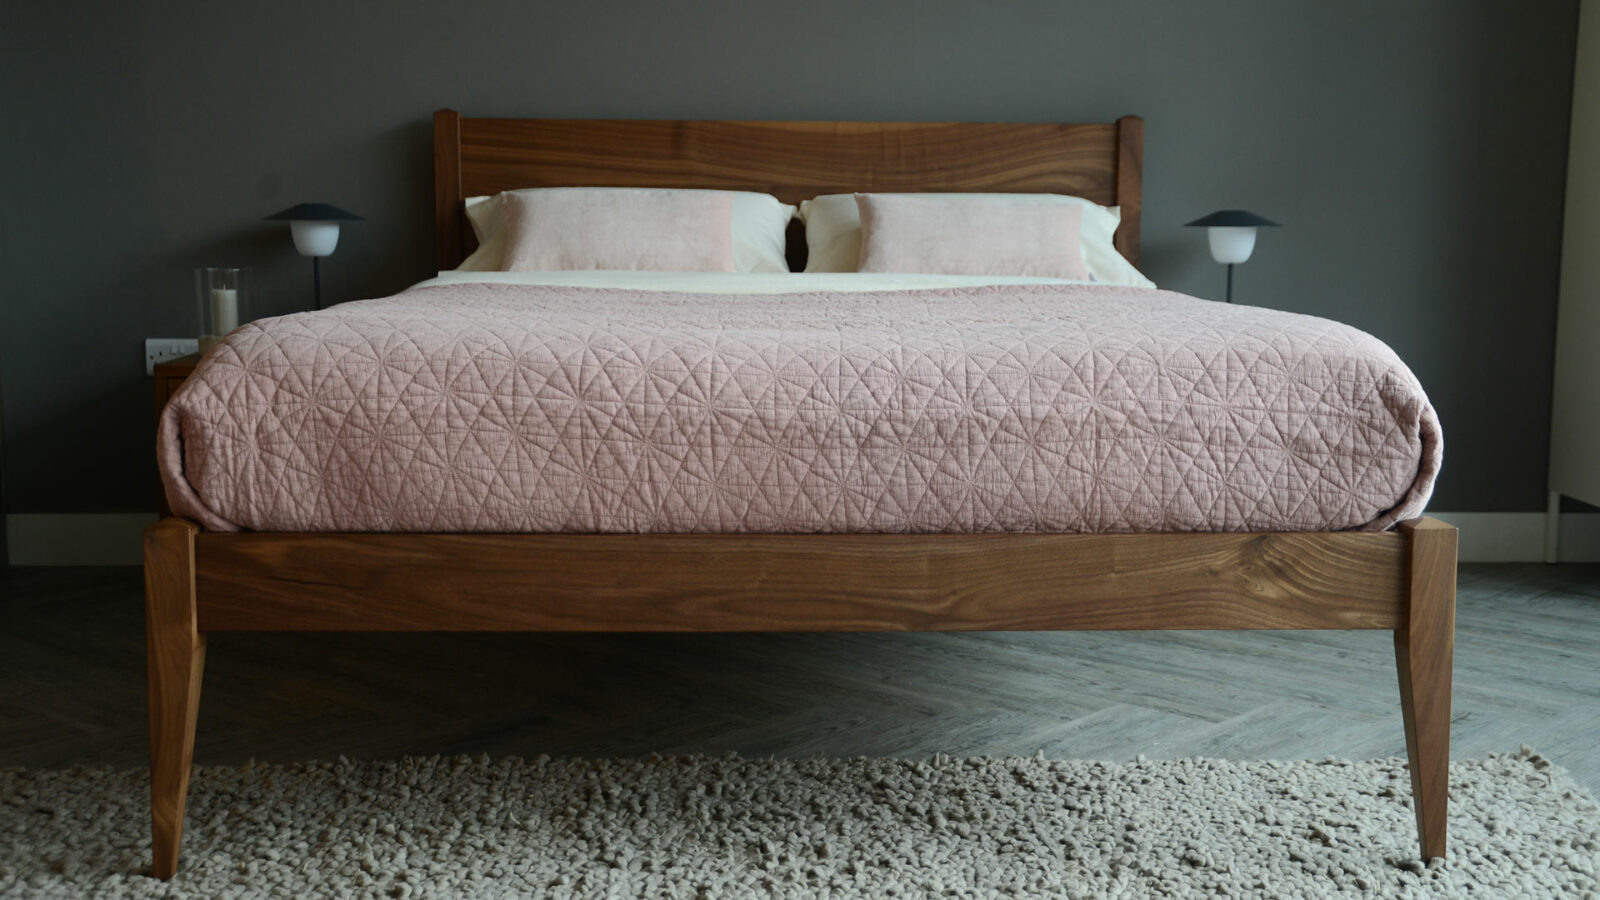 walnut cochin bed in Kingsize with a blush pink hexagon stitched quilted bedspread